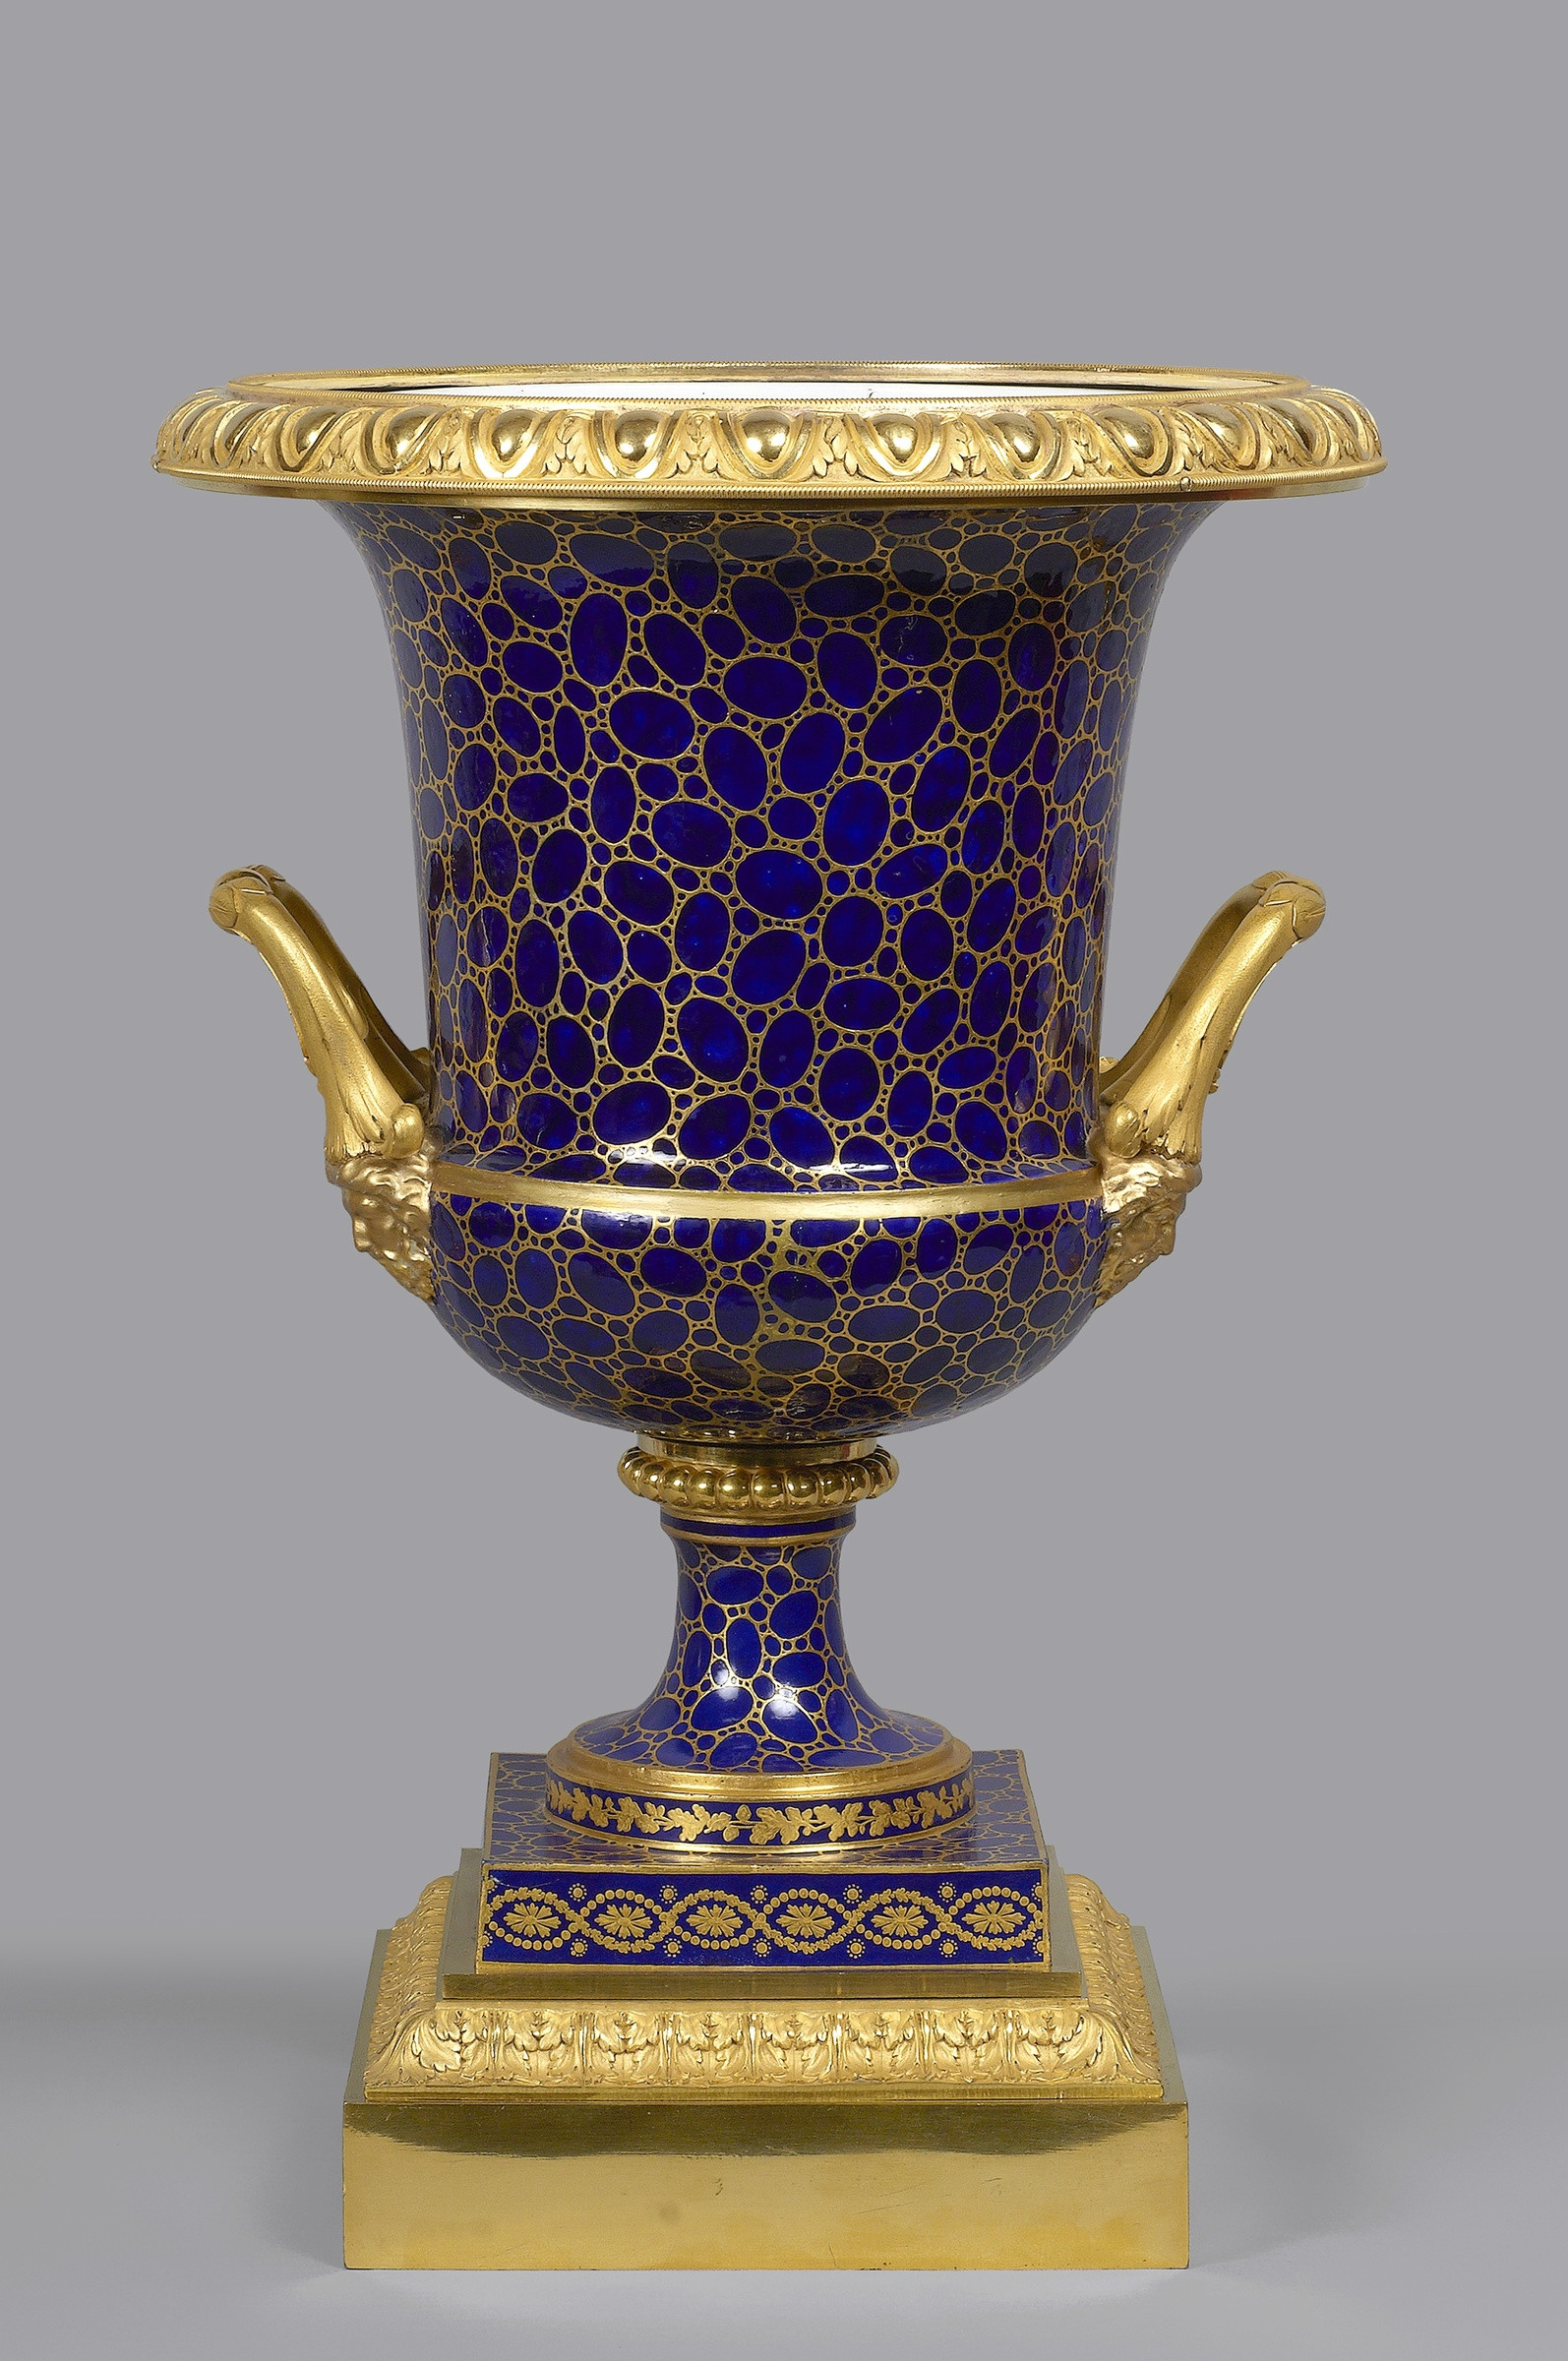 Antique Chinese Glass Vase Of Sa¨vres A Louis Xvi Sa¨vres Medici Vase A Taate De Jupiter Paris Intended for A Louis Xvi Sa¨vres Medici Vase A Taate De Jupiter